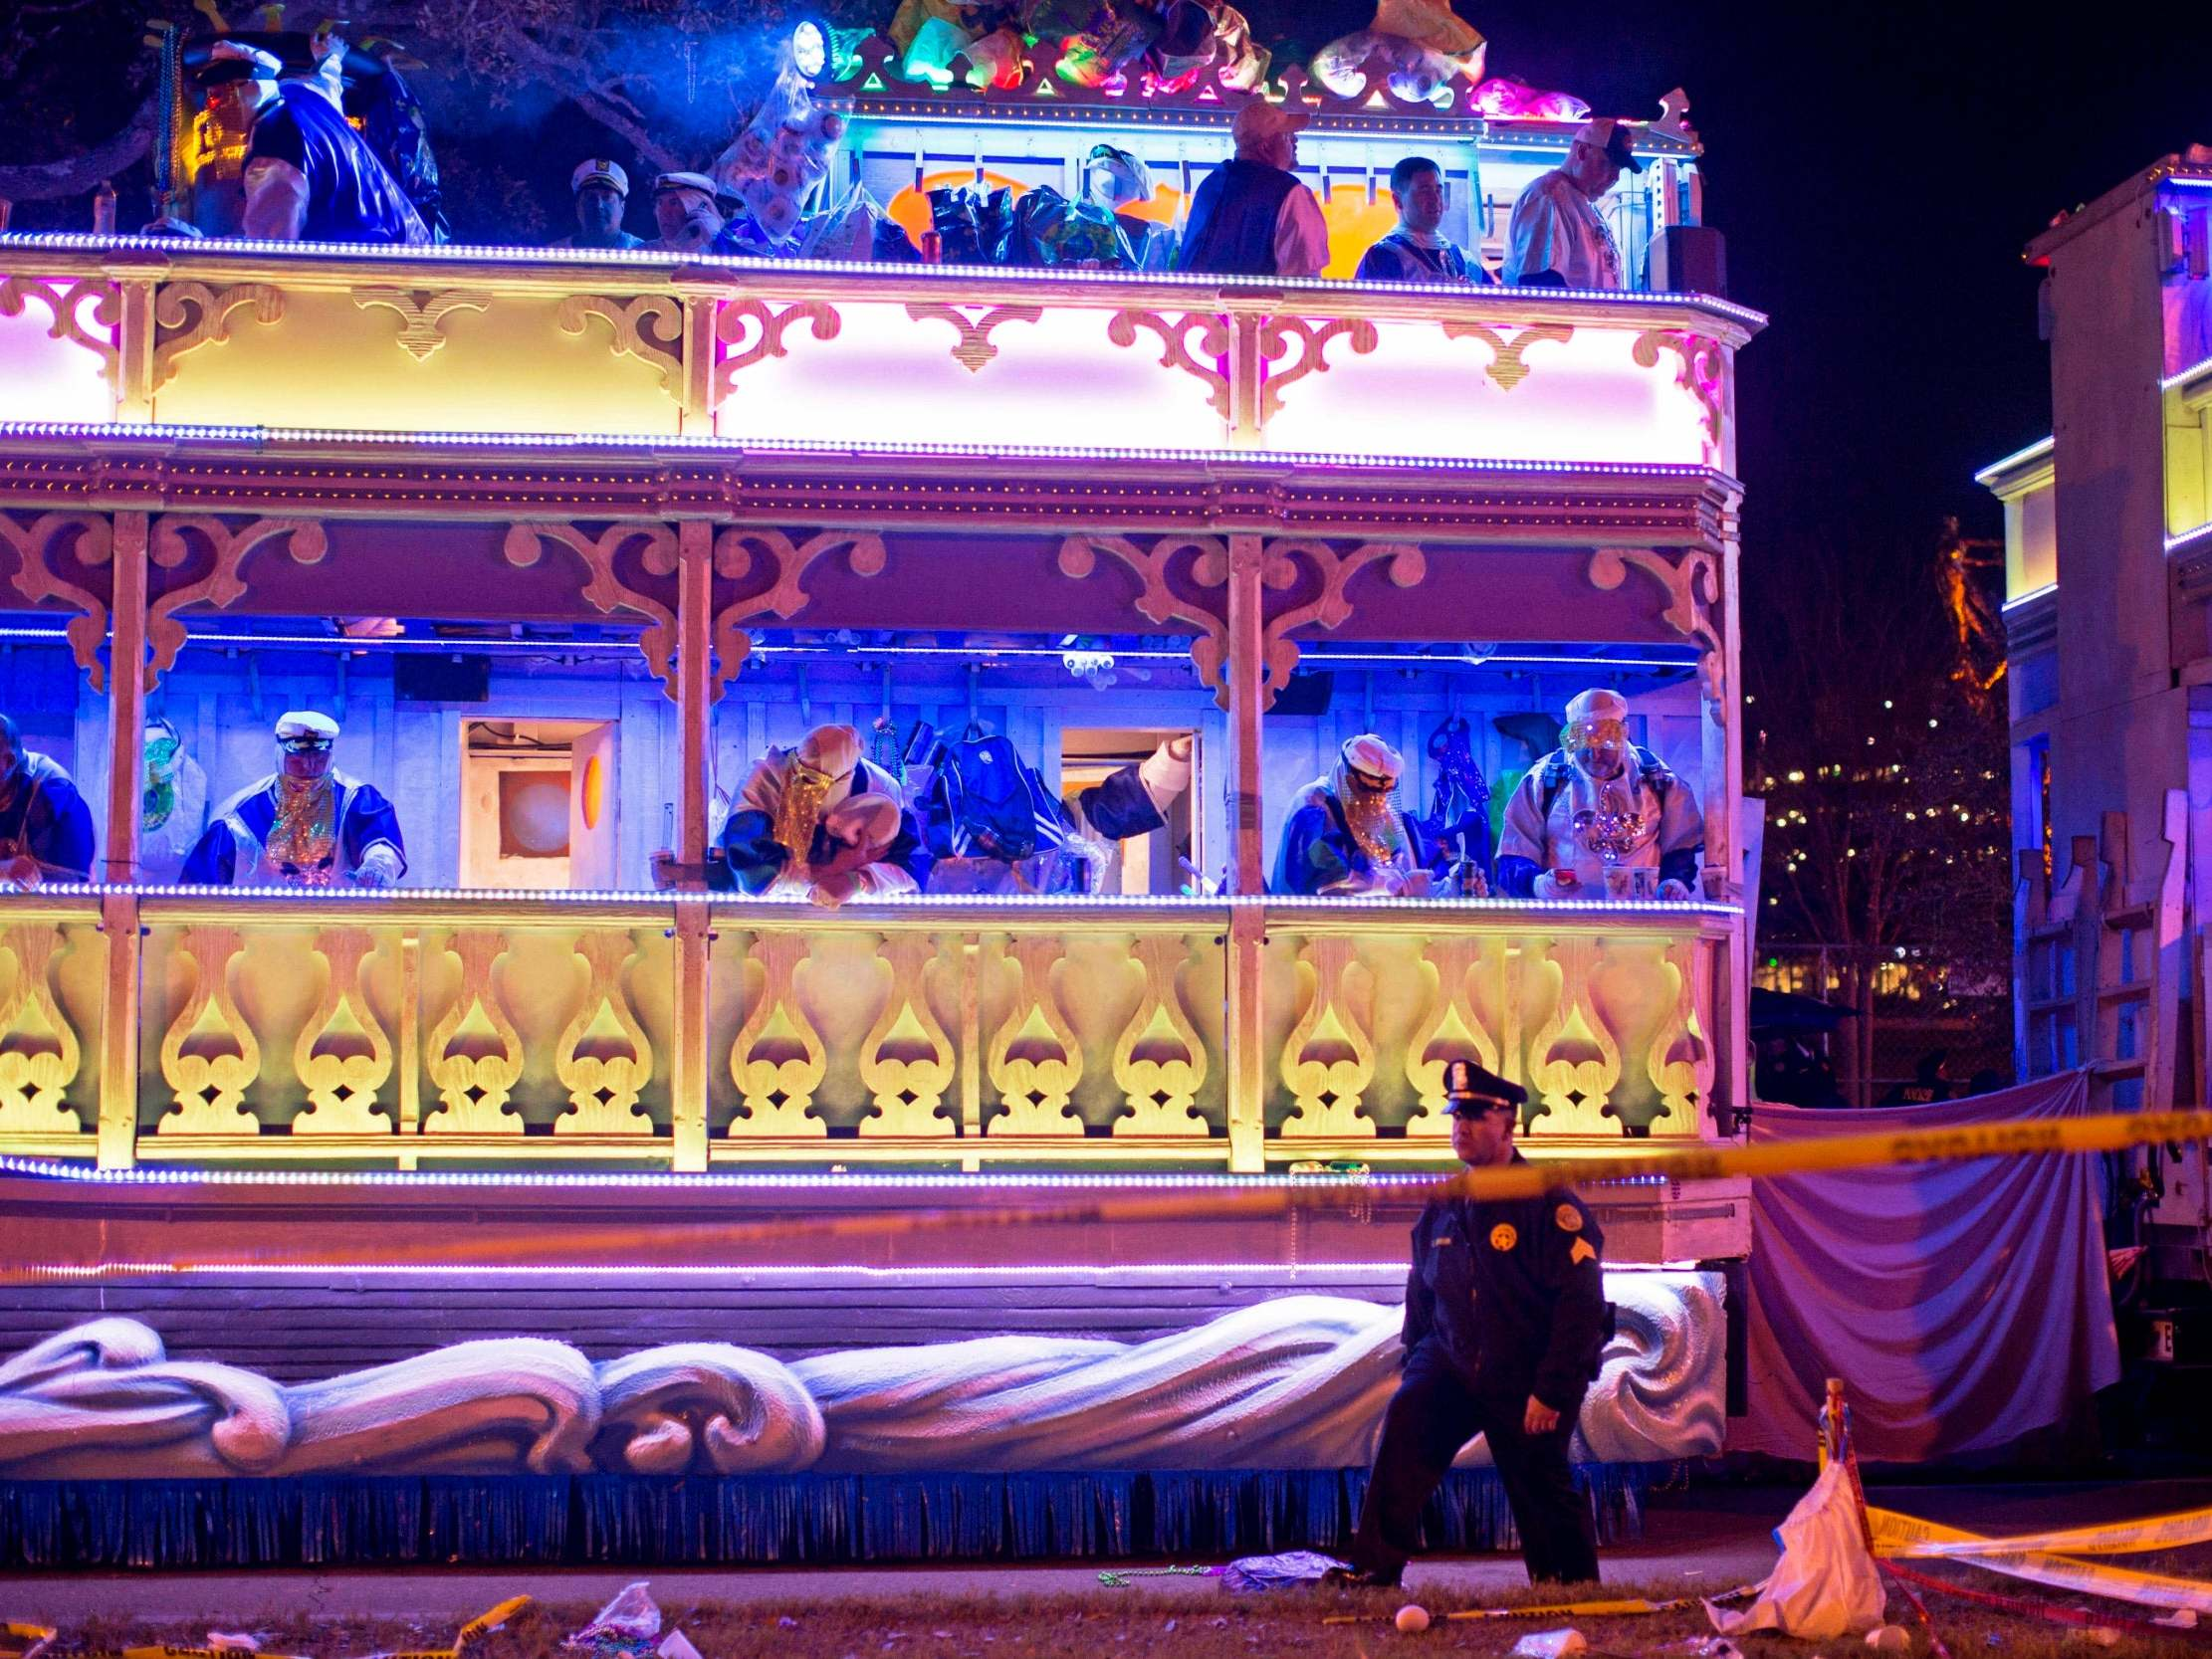 Two people killed by Mardi Gras parade floats in New Orleans - independent